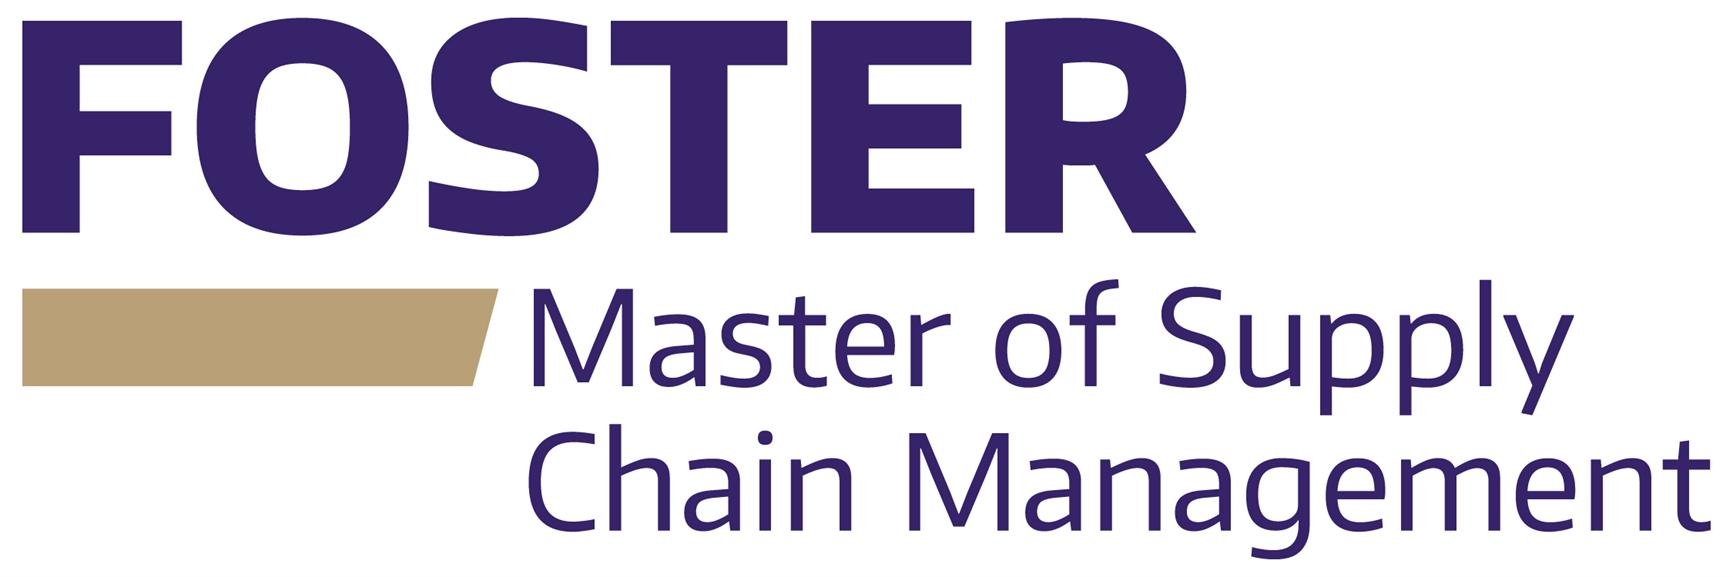 Online Application Workshop - Master of Supply Chain Management